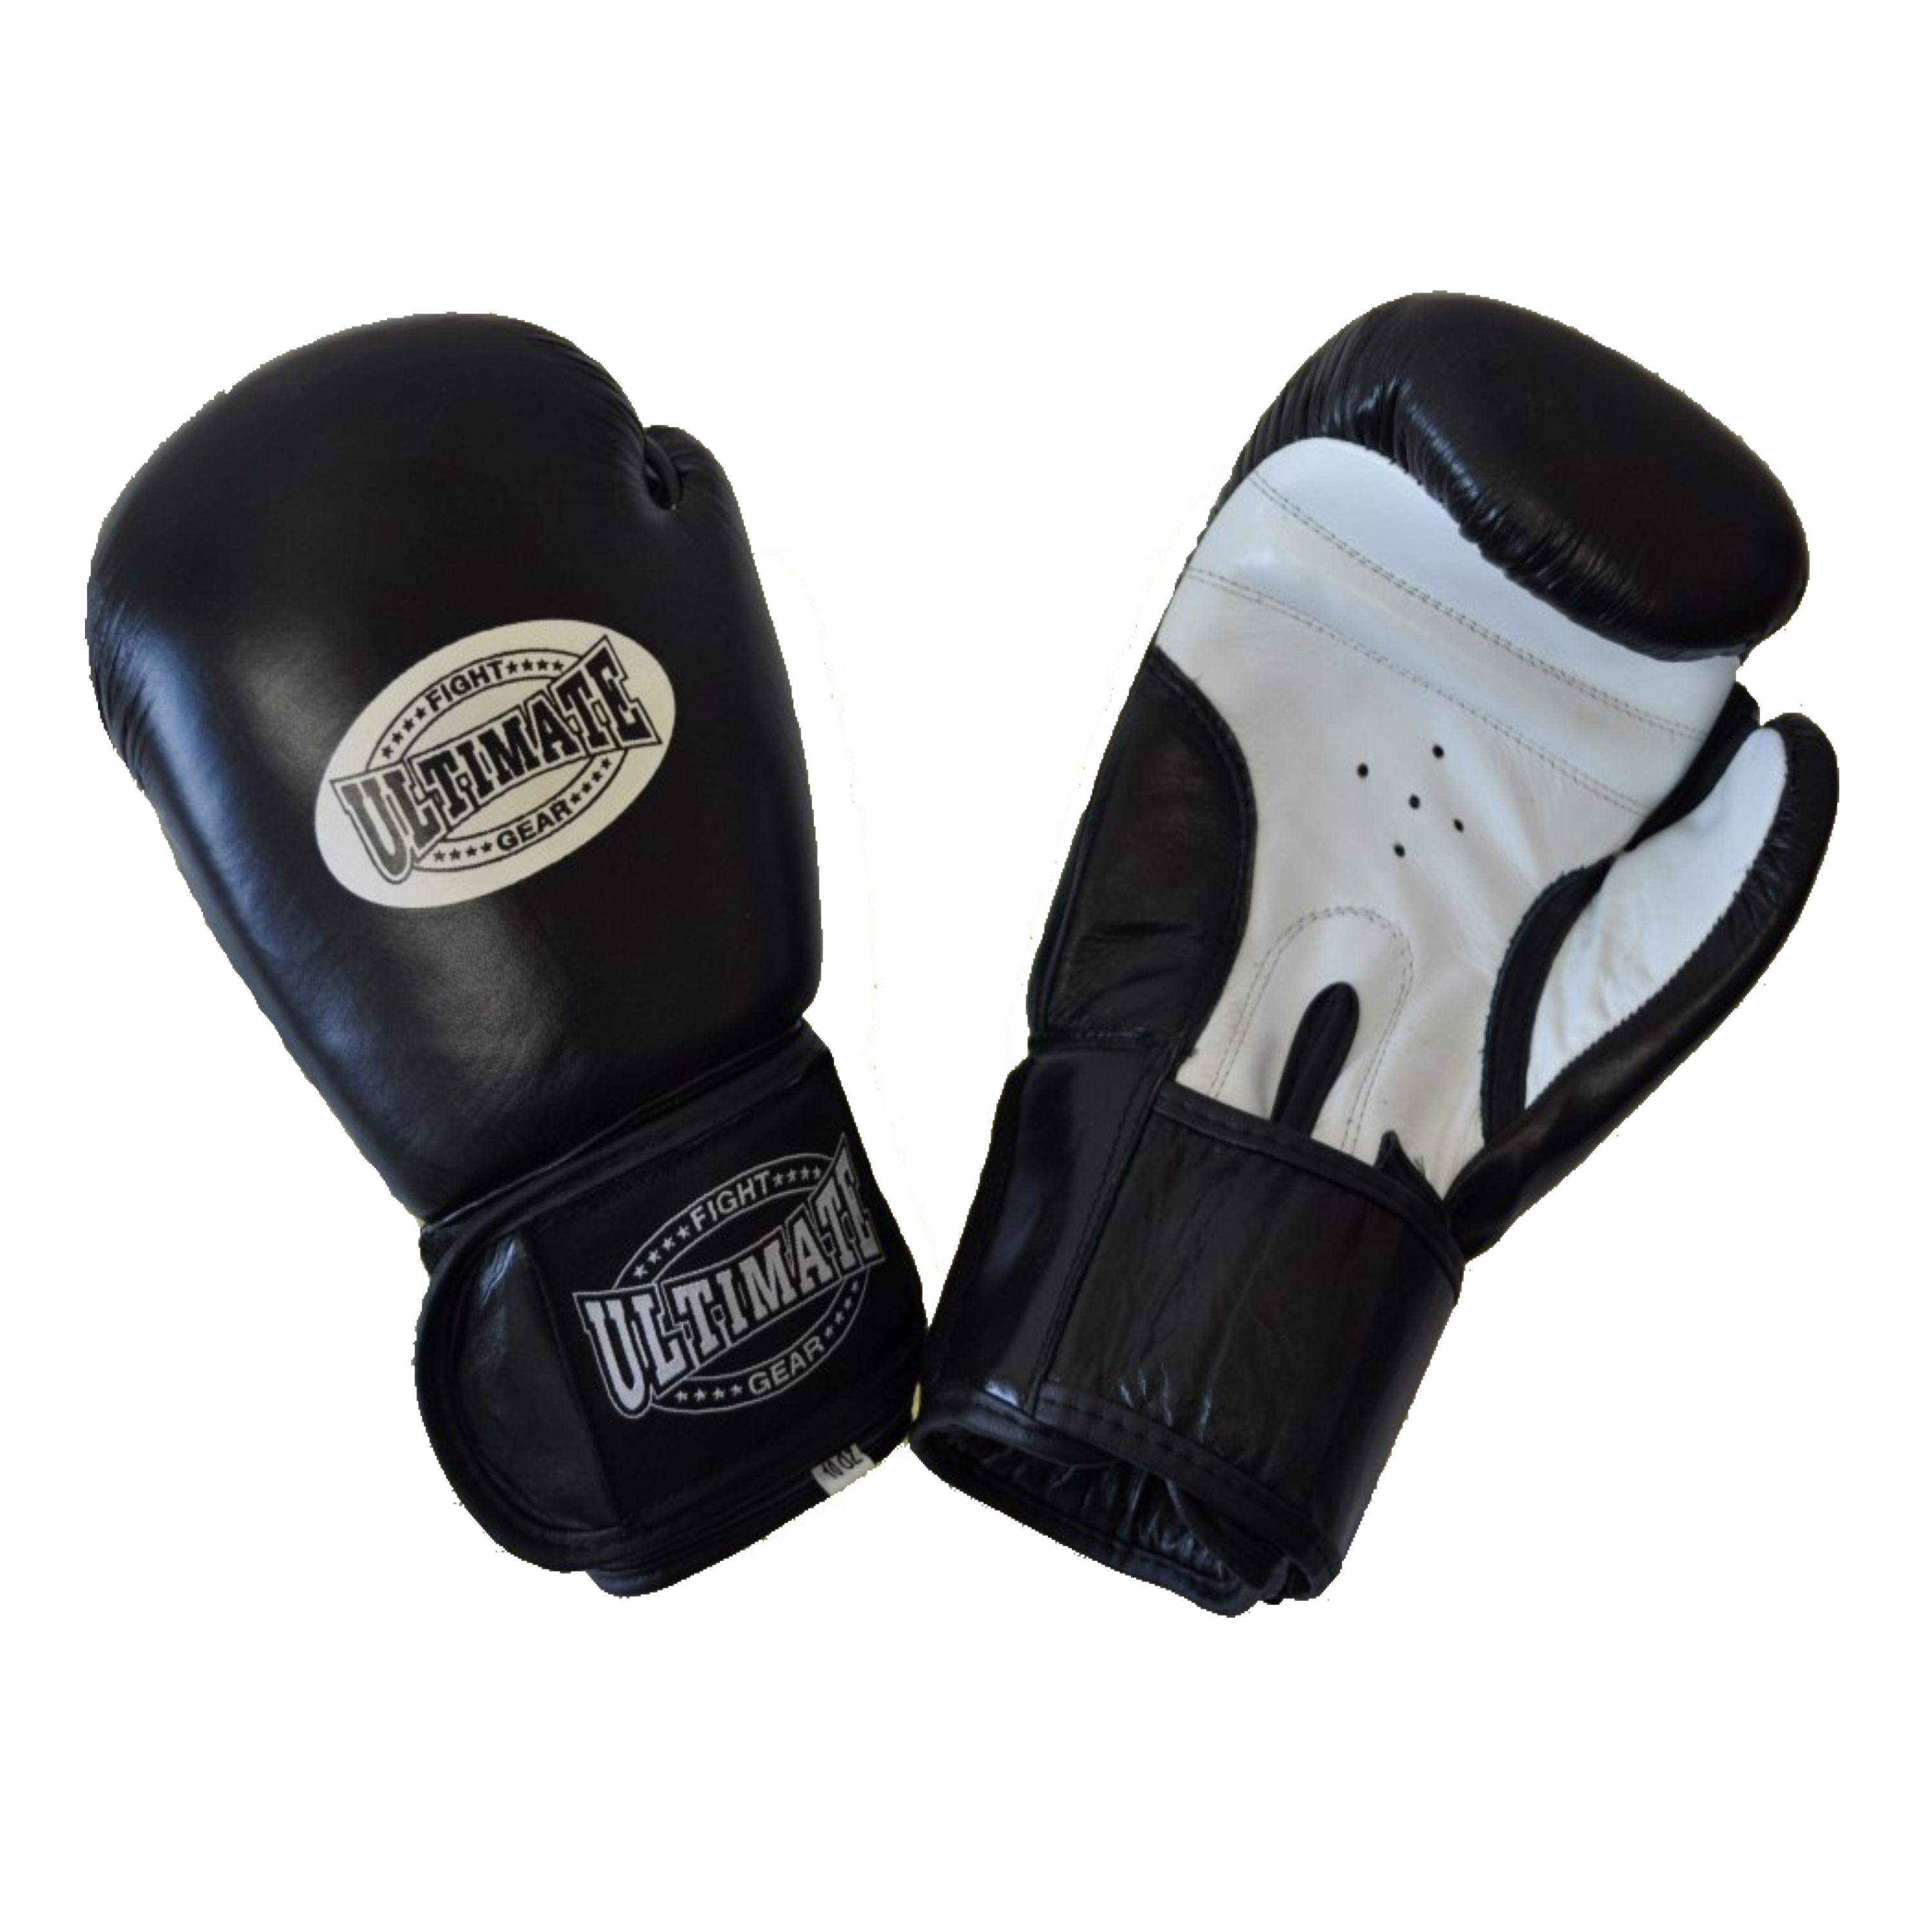 Ultimate Fight Gear Leather Boxing Gloves